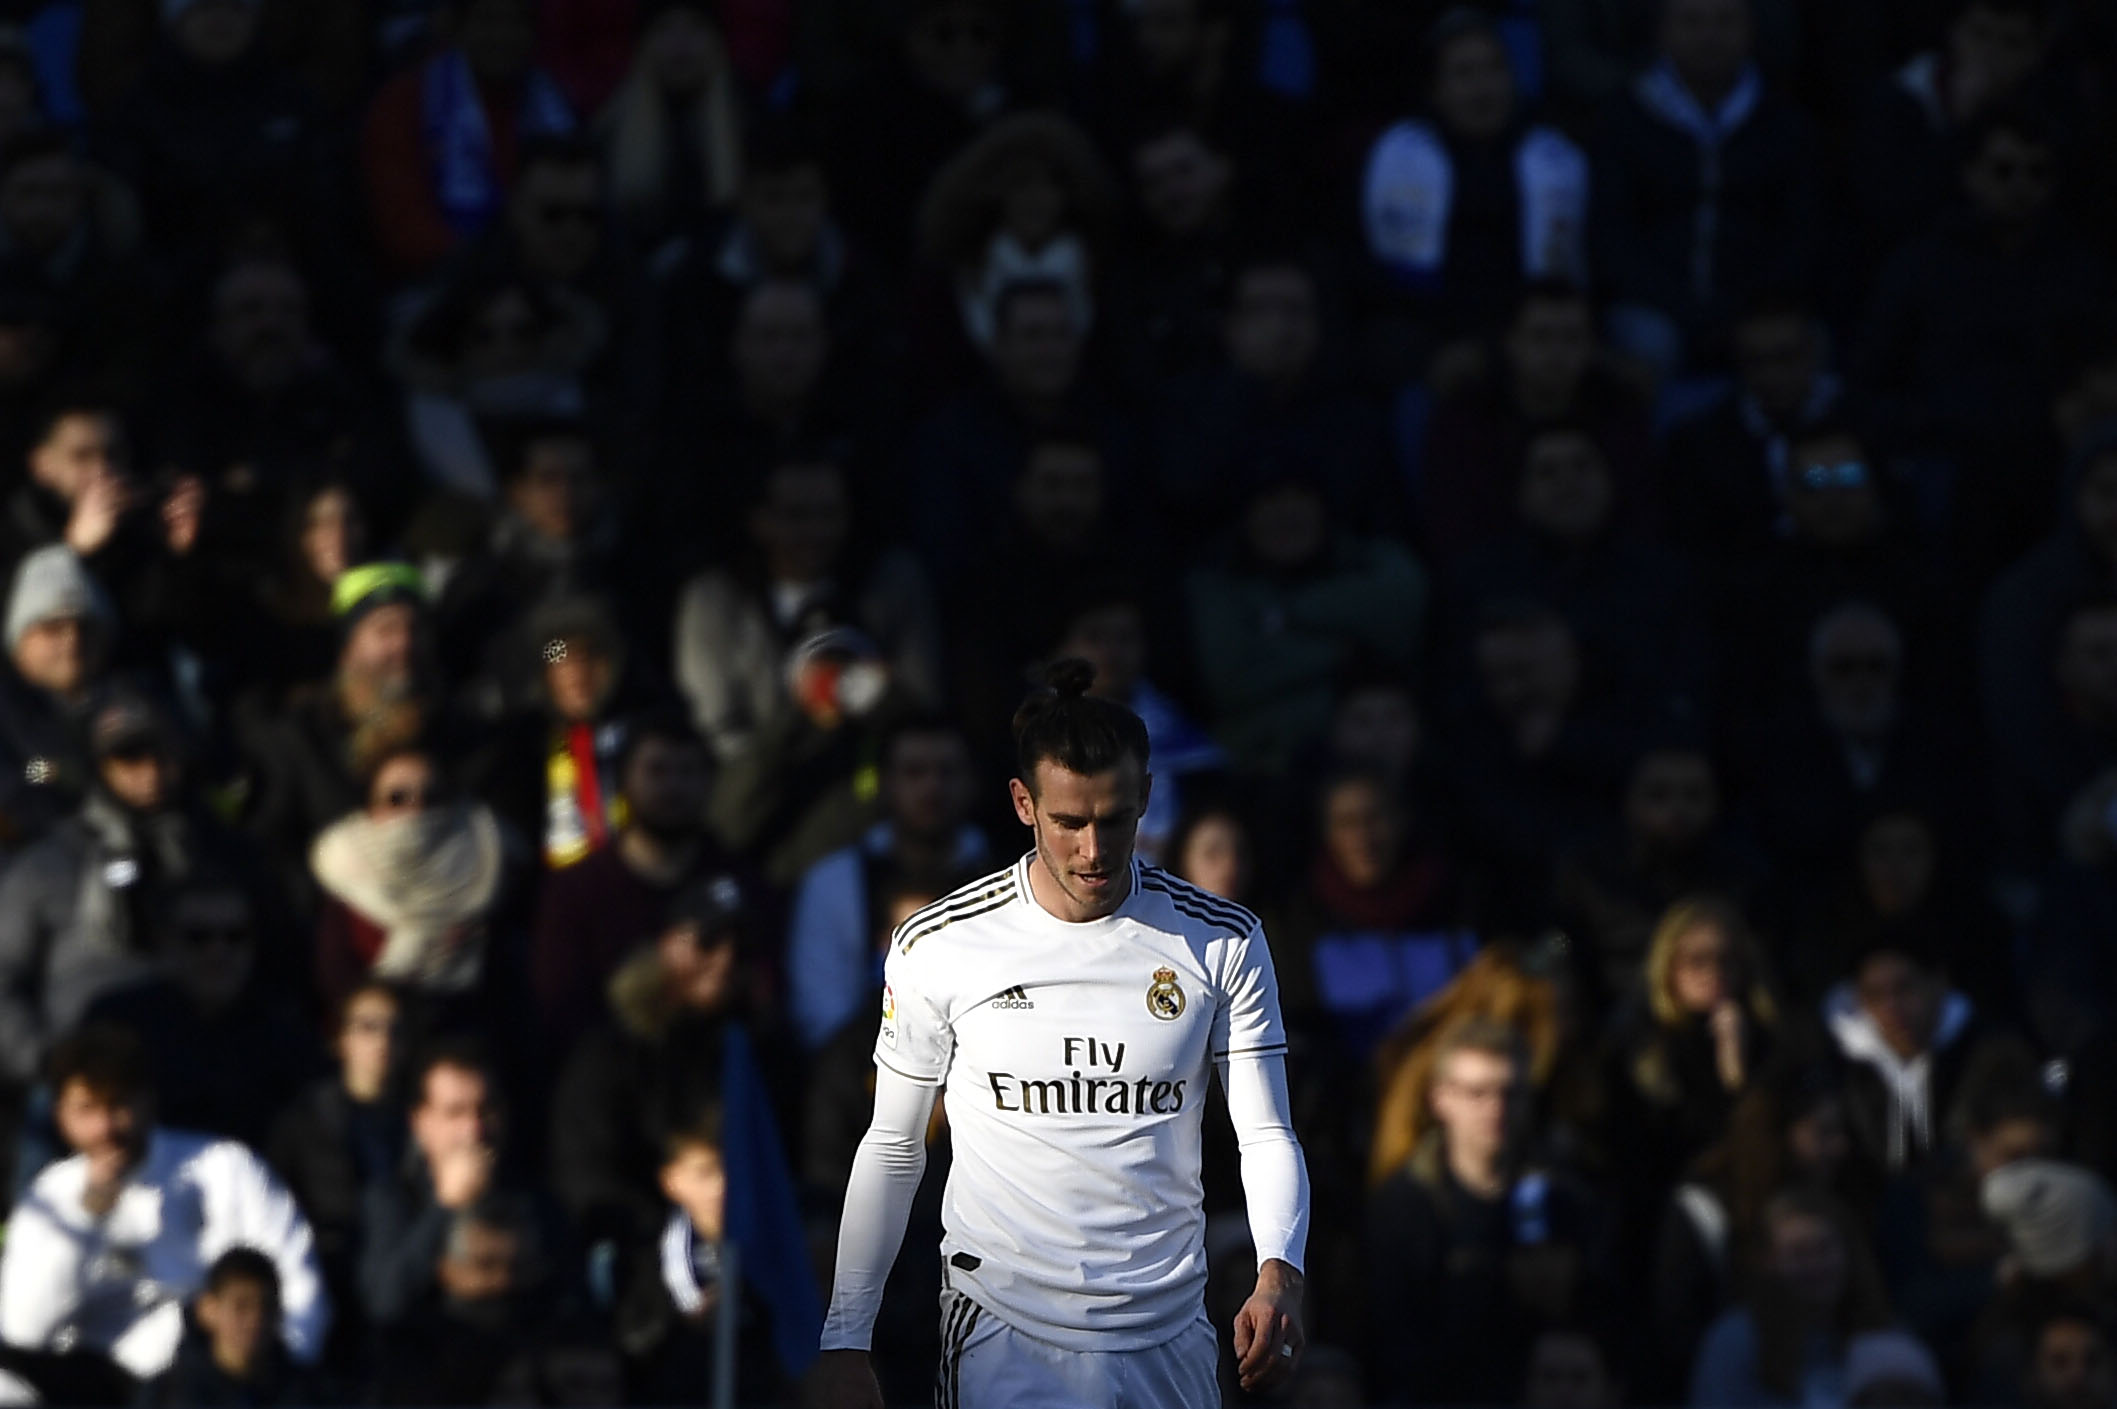 Will Bale come out of the shadows to get his career back on track? (Photo by Oscar del Pozo/AFP via Getty Images)